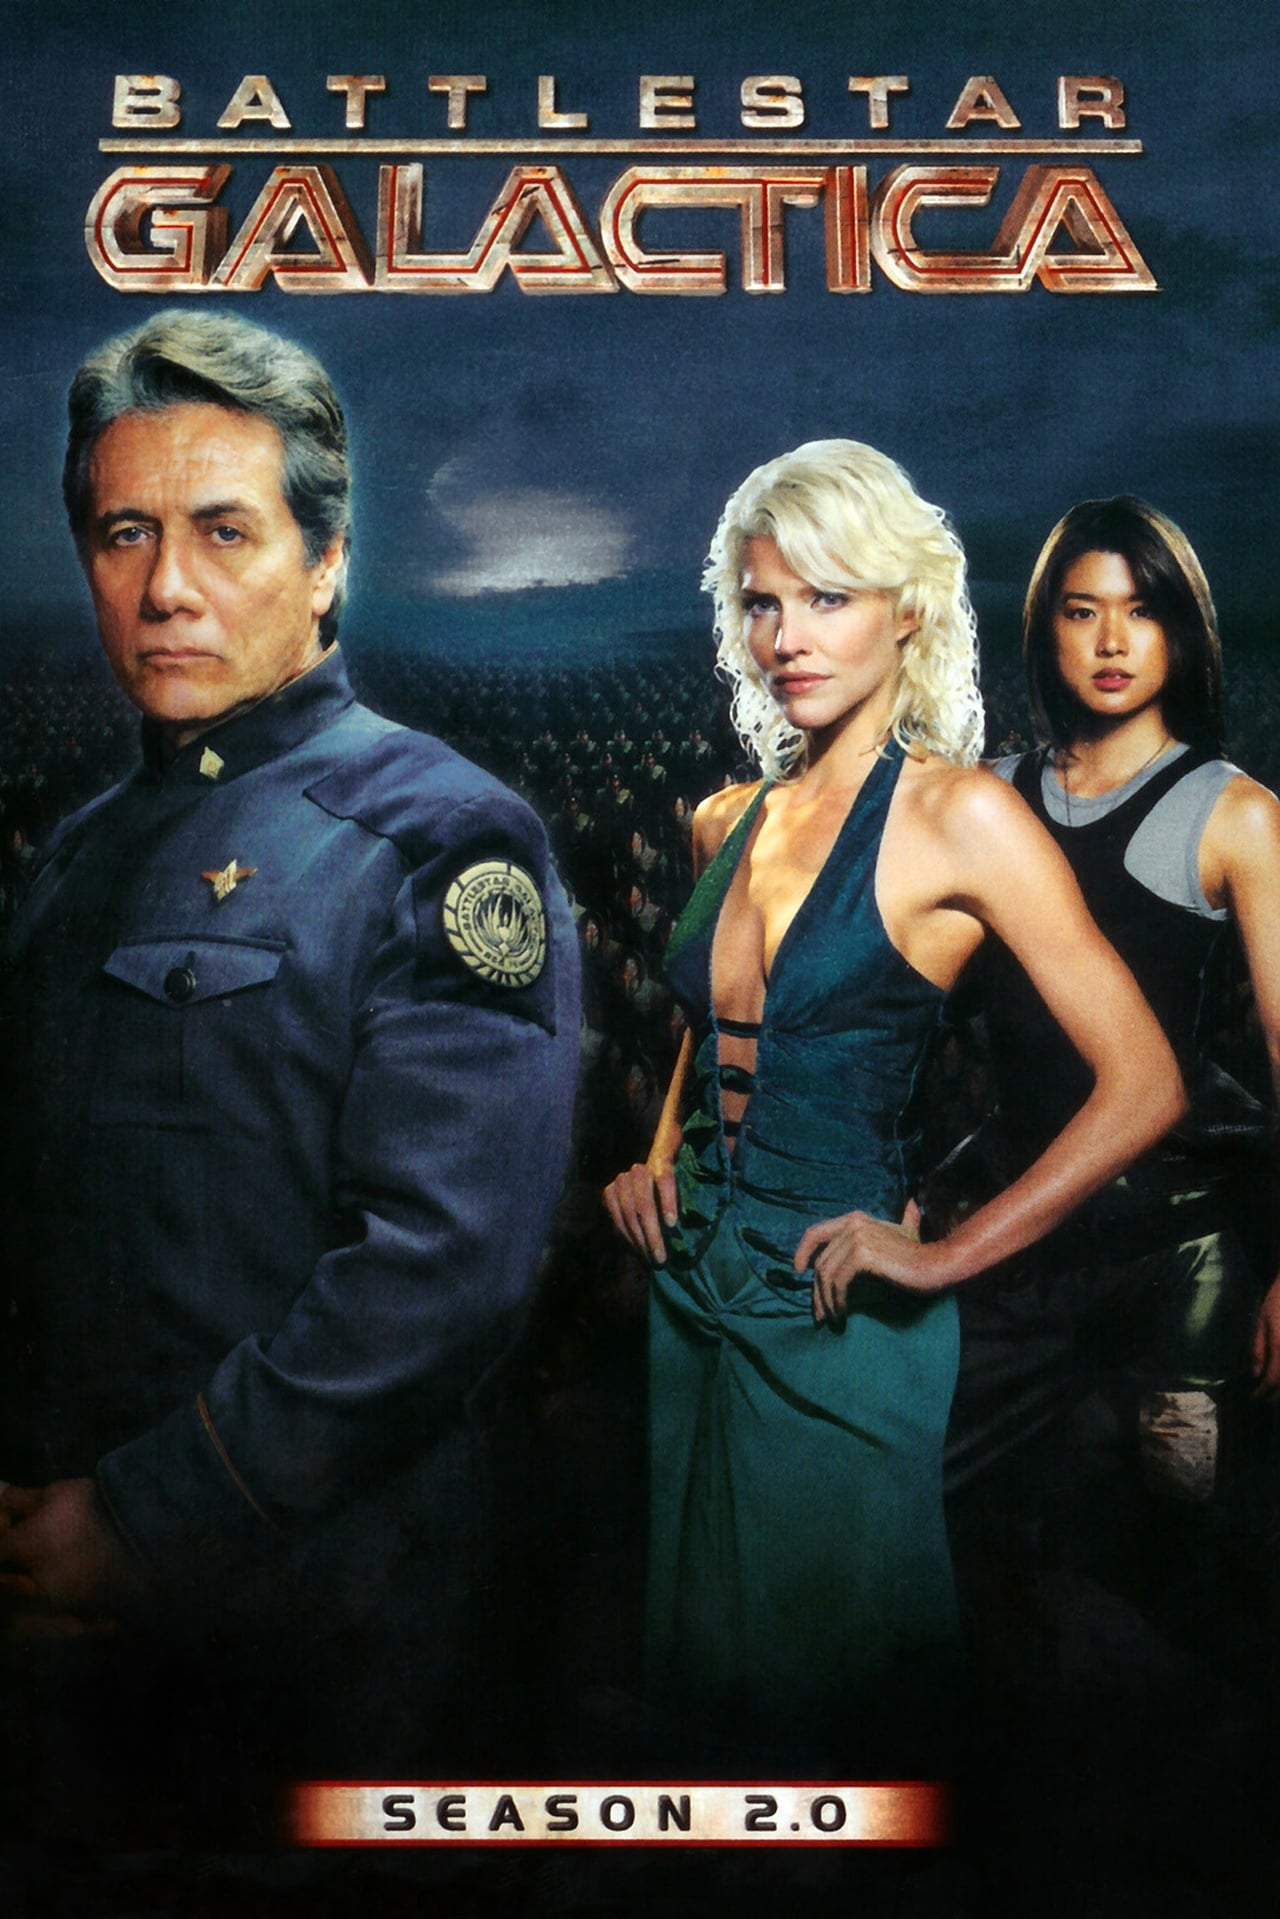 Watch Battlestar Galactica Season 2 Online